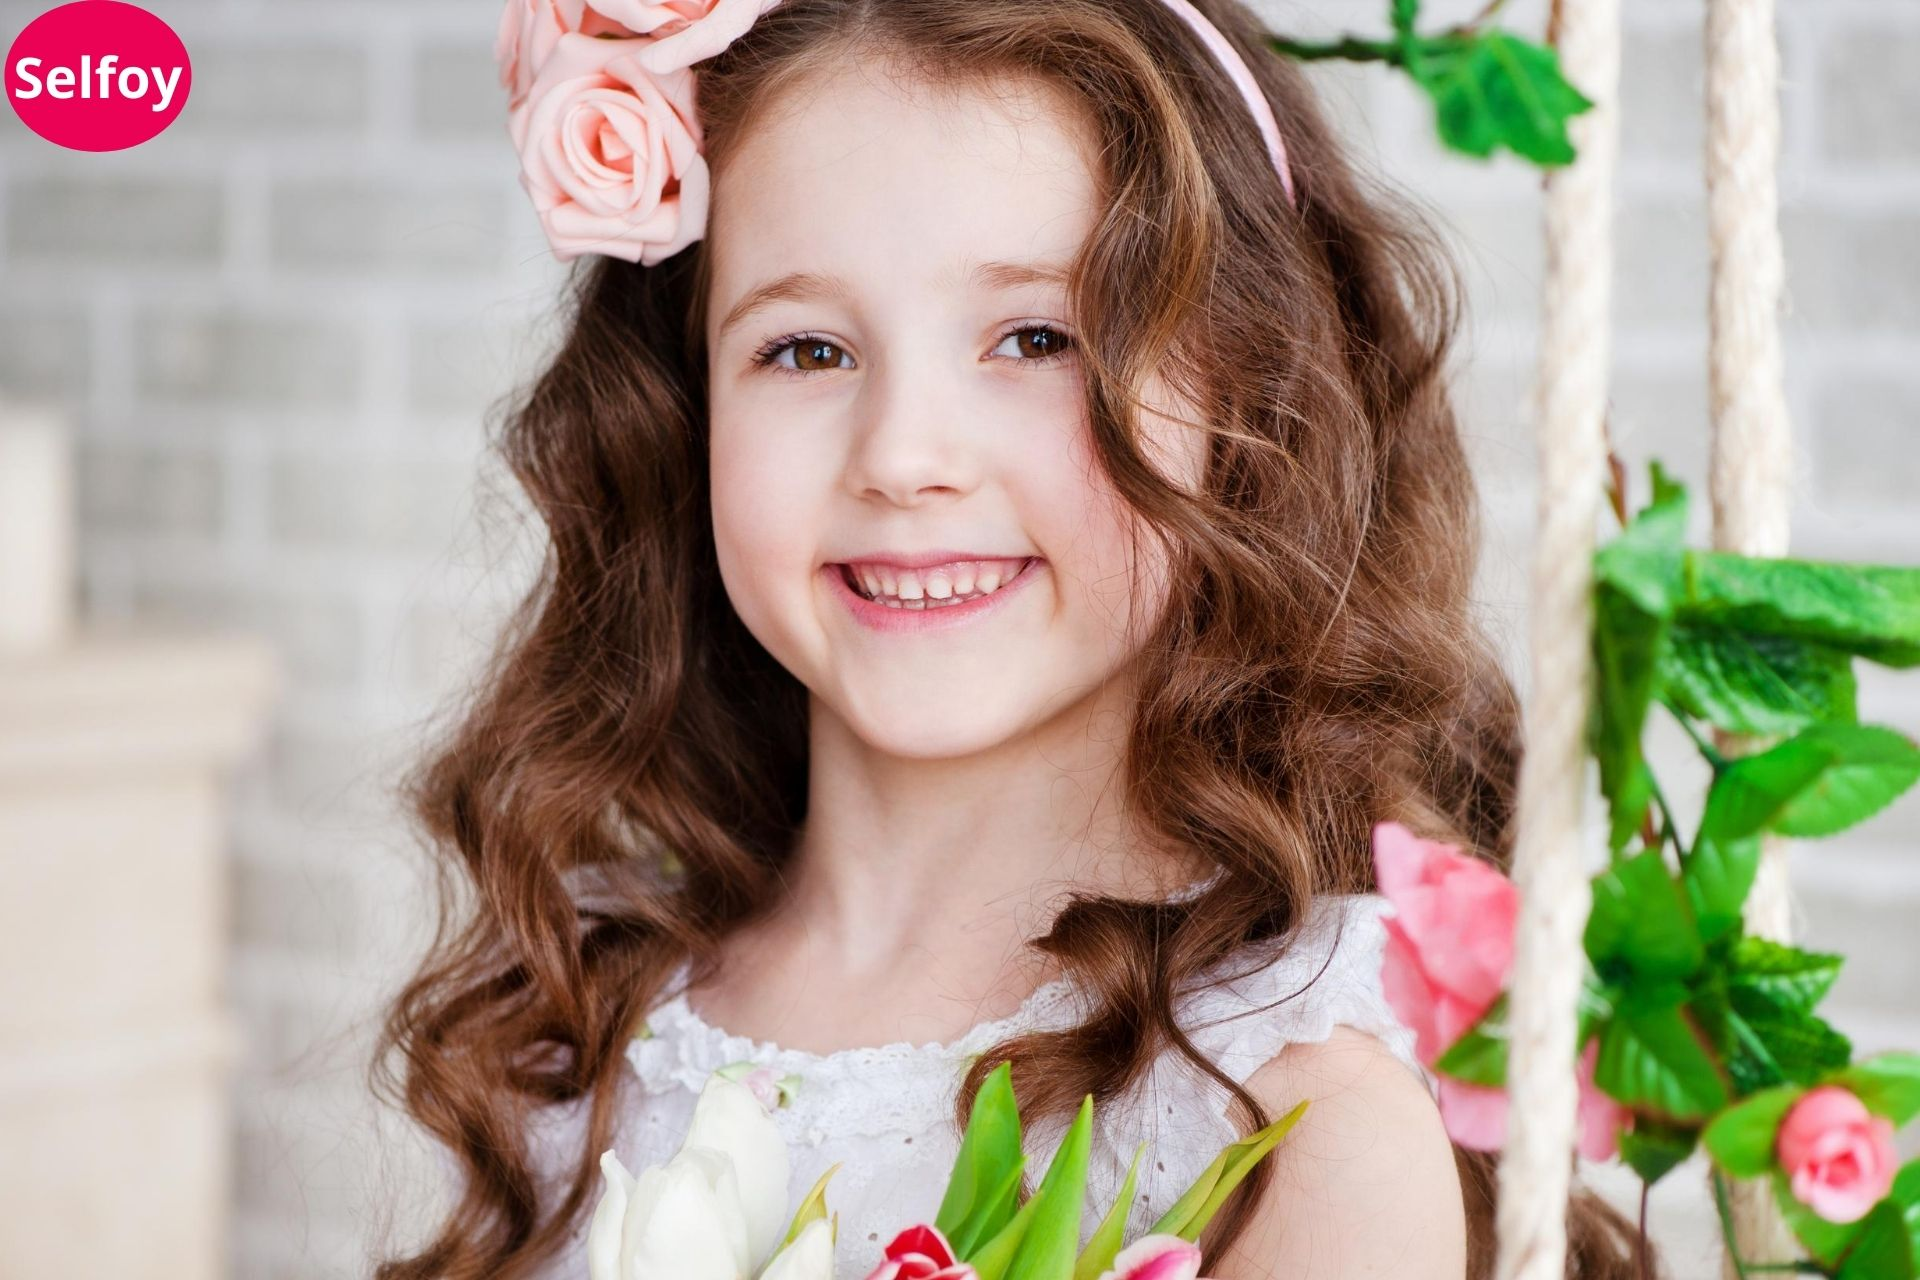 Child wearing pink rose in hairs and smiling and showing Good Personal Hygiene Helps to Develop Positive Self Esteem